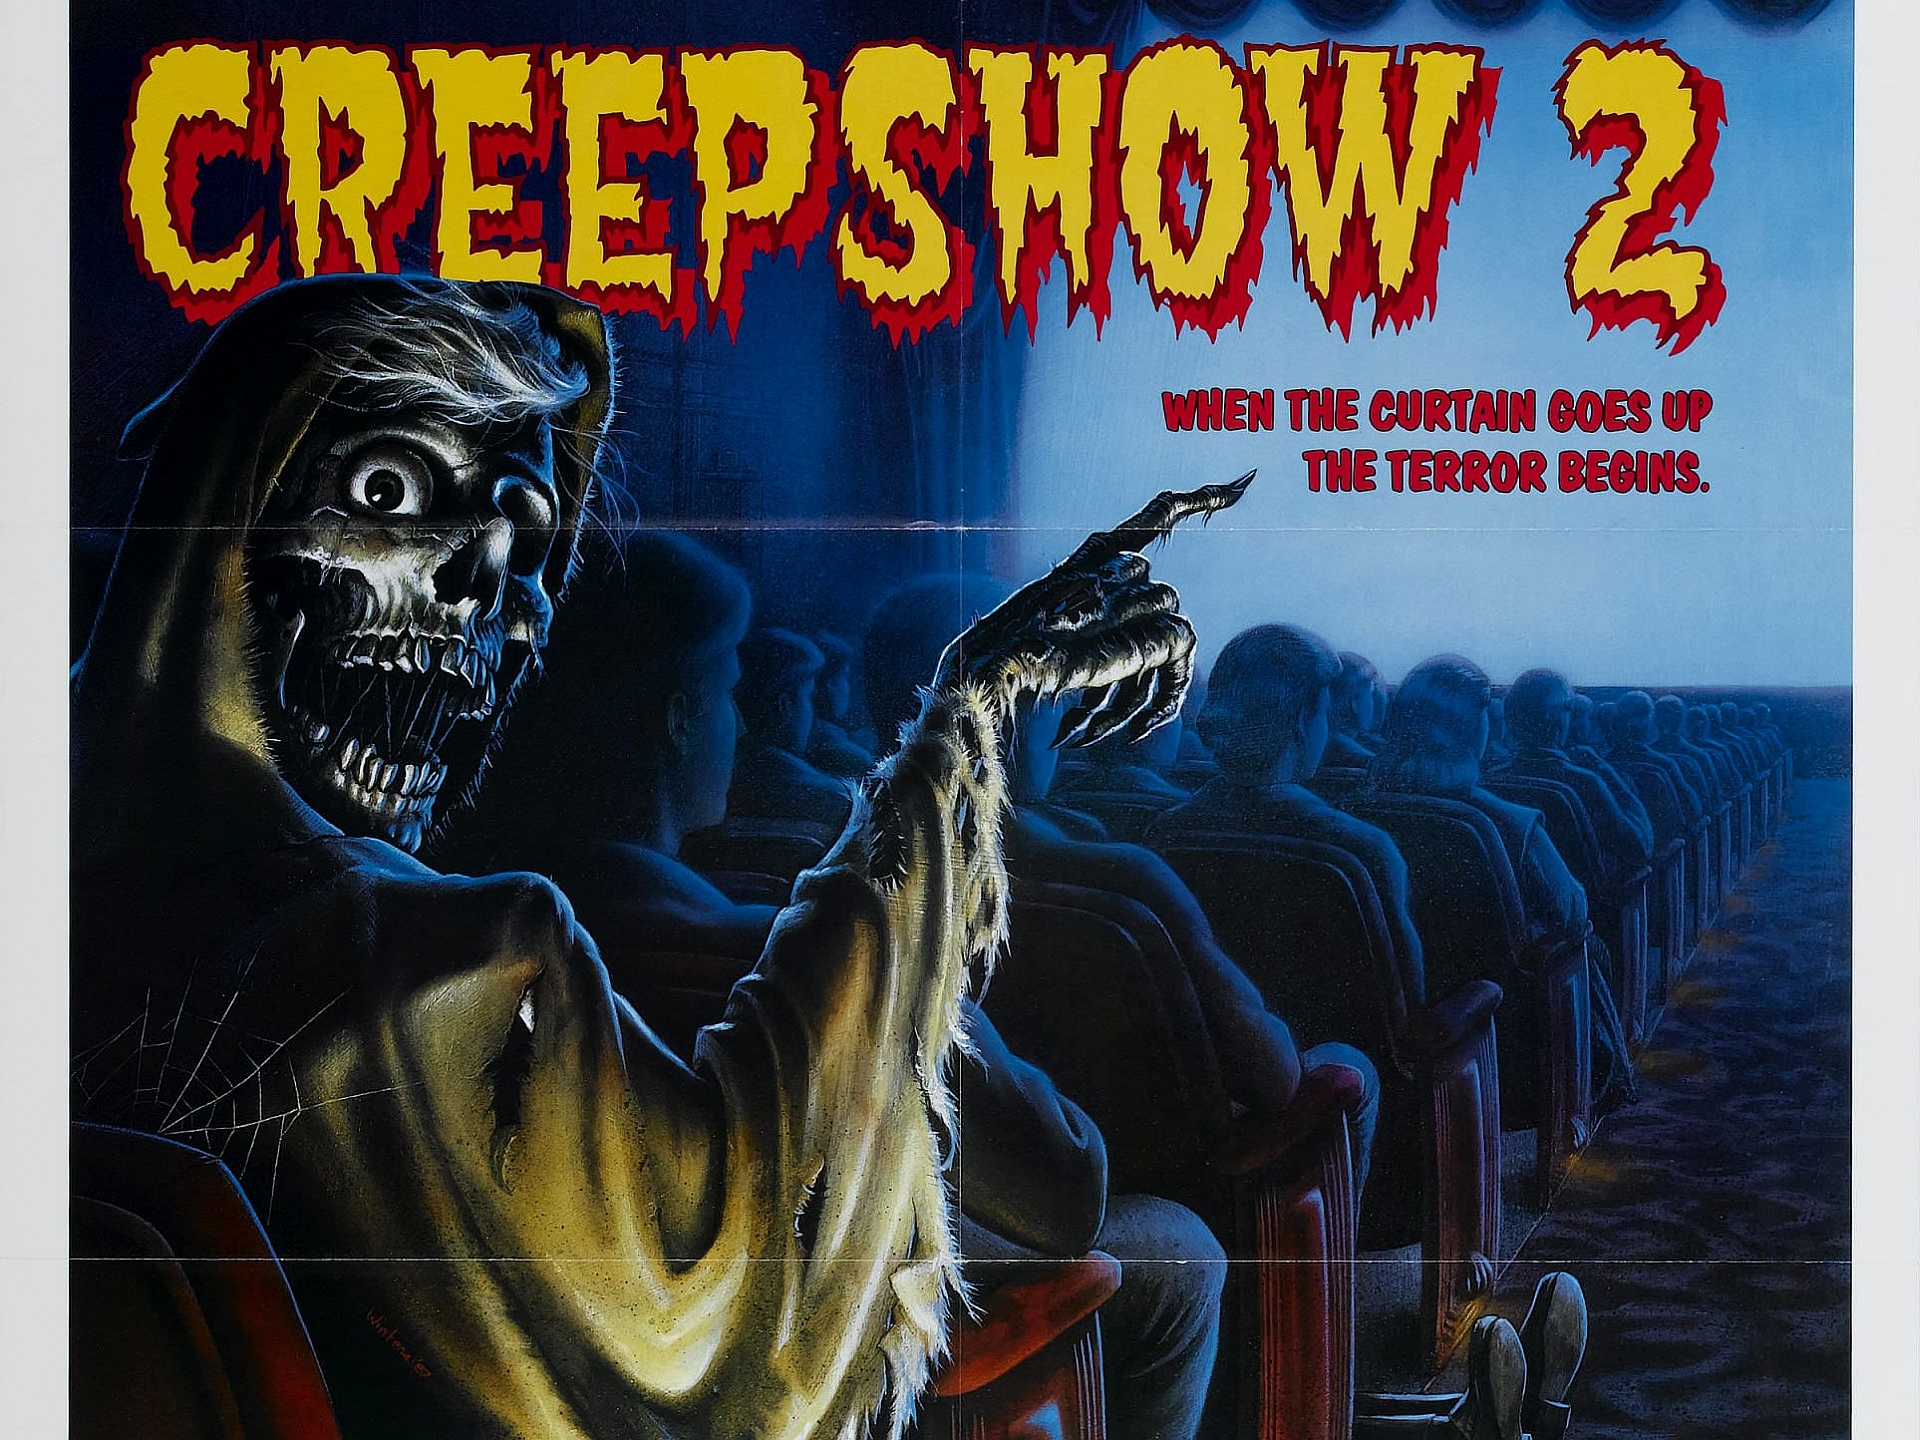 Creepshow 2 Quotes Creepshow 2 hd Wallpapers